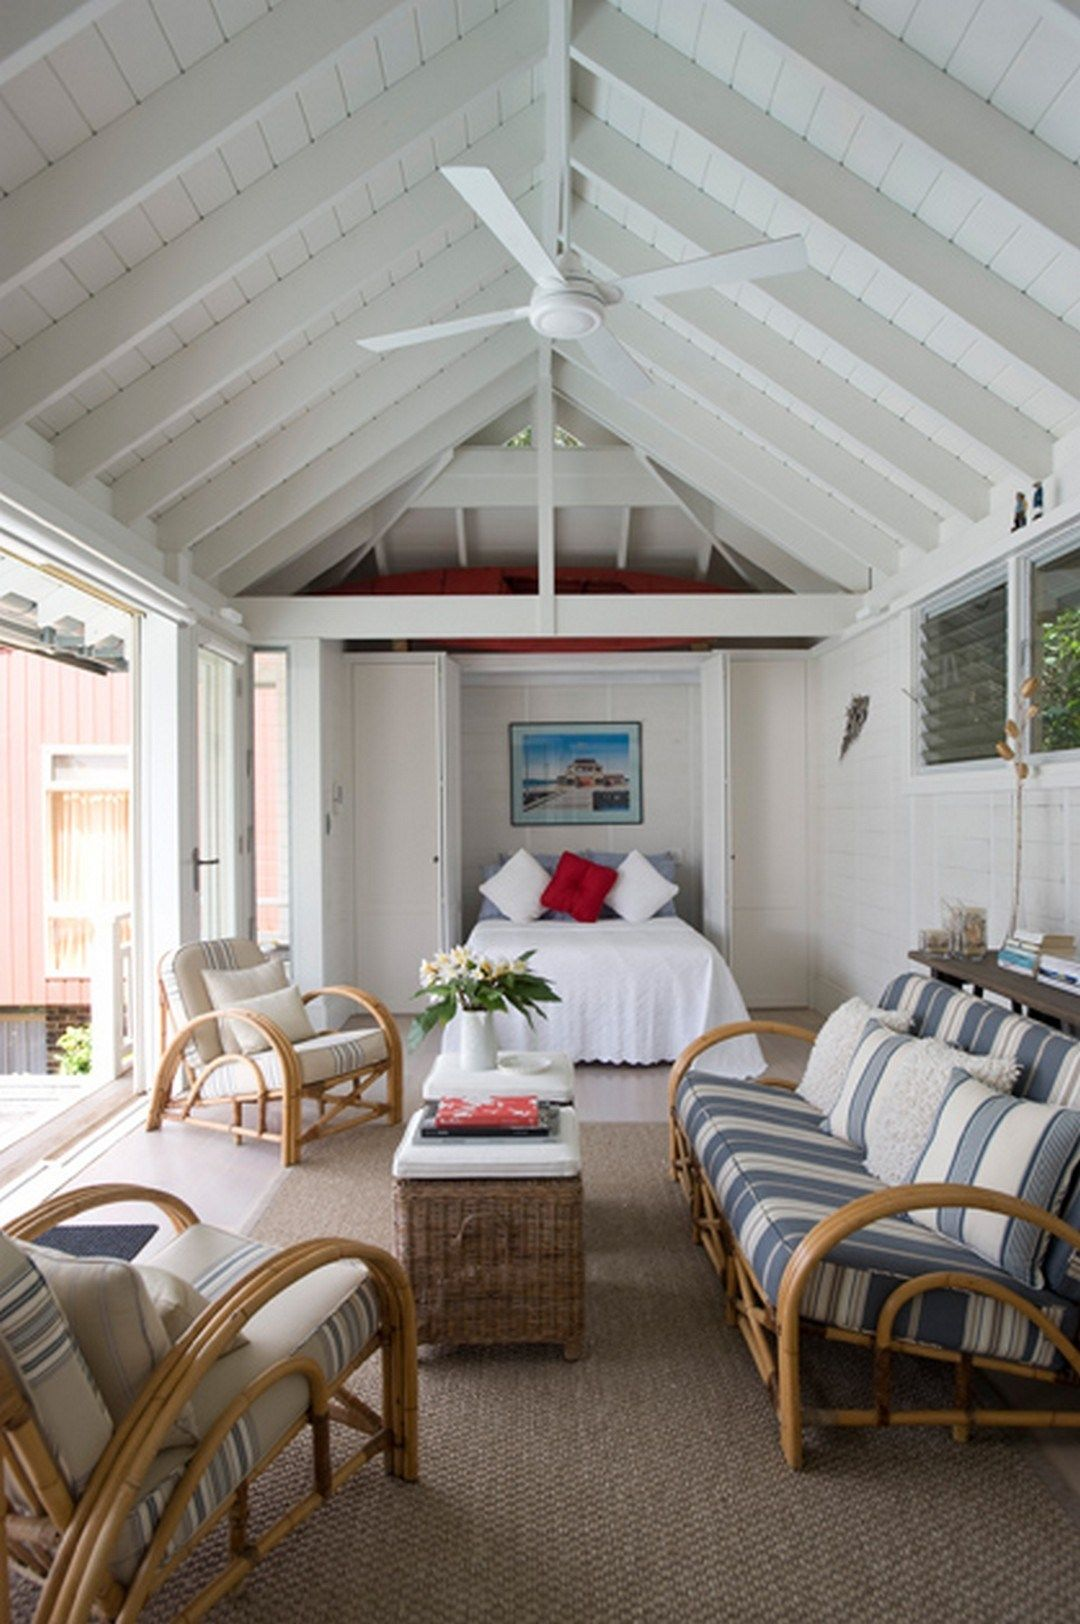 Beautiful First Home Decorating Ideas On A Budget: Beautiful Pool House Decorating Ideas On A Budget (17